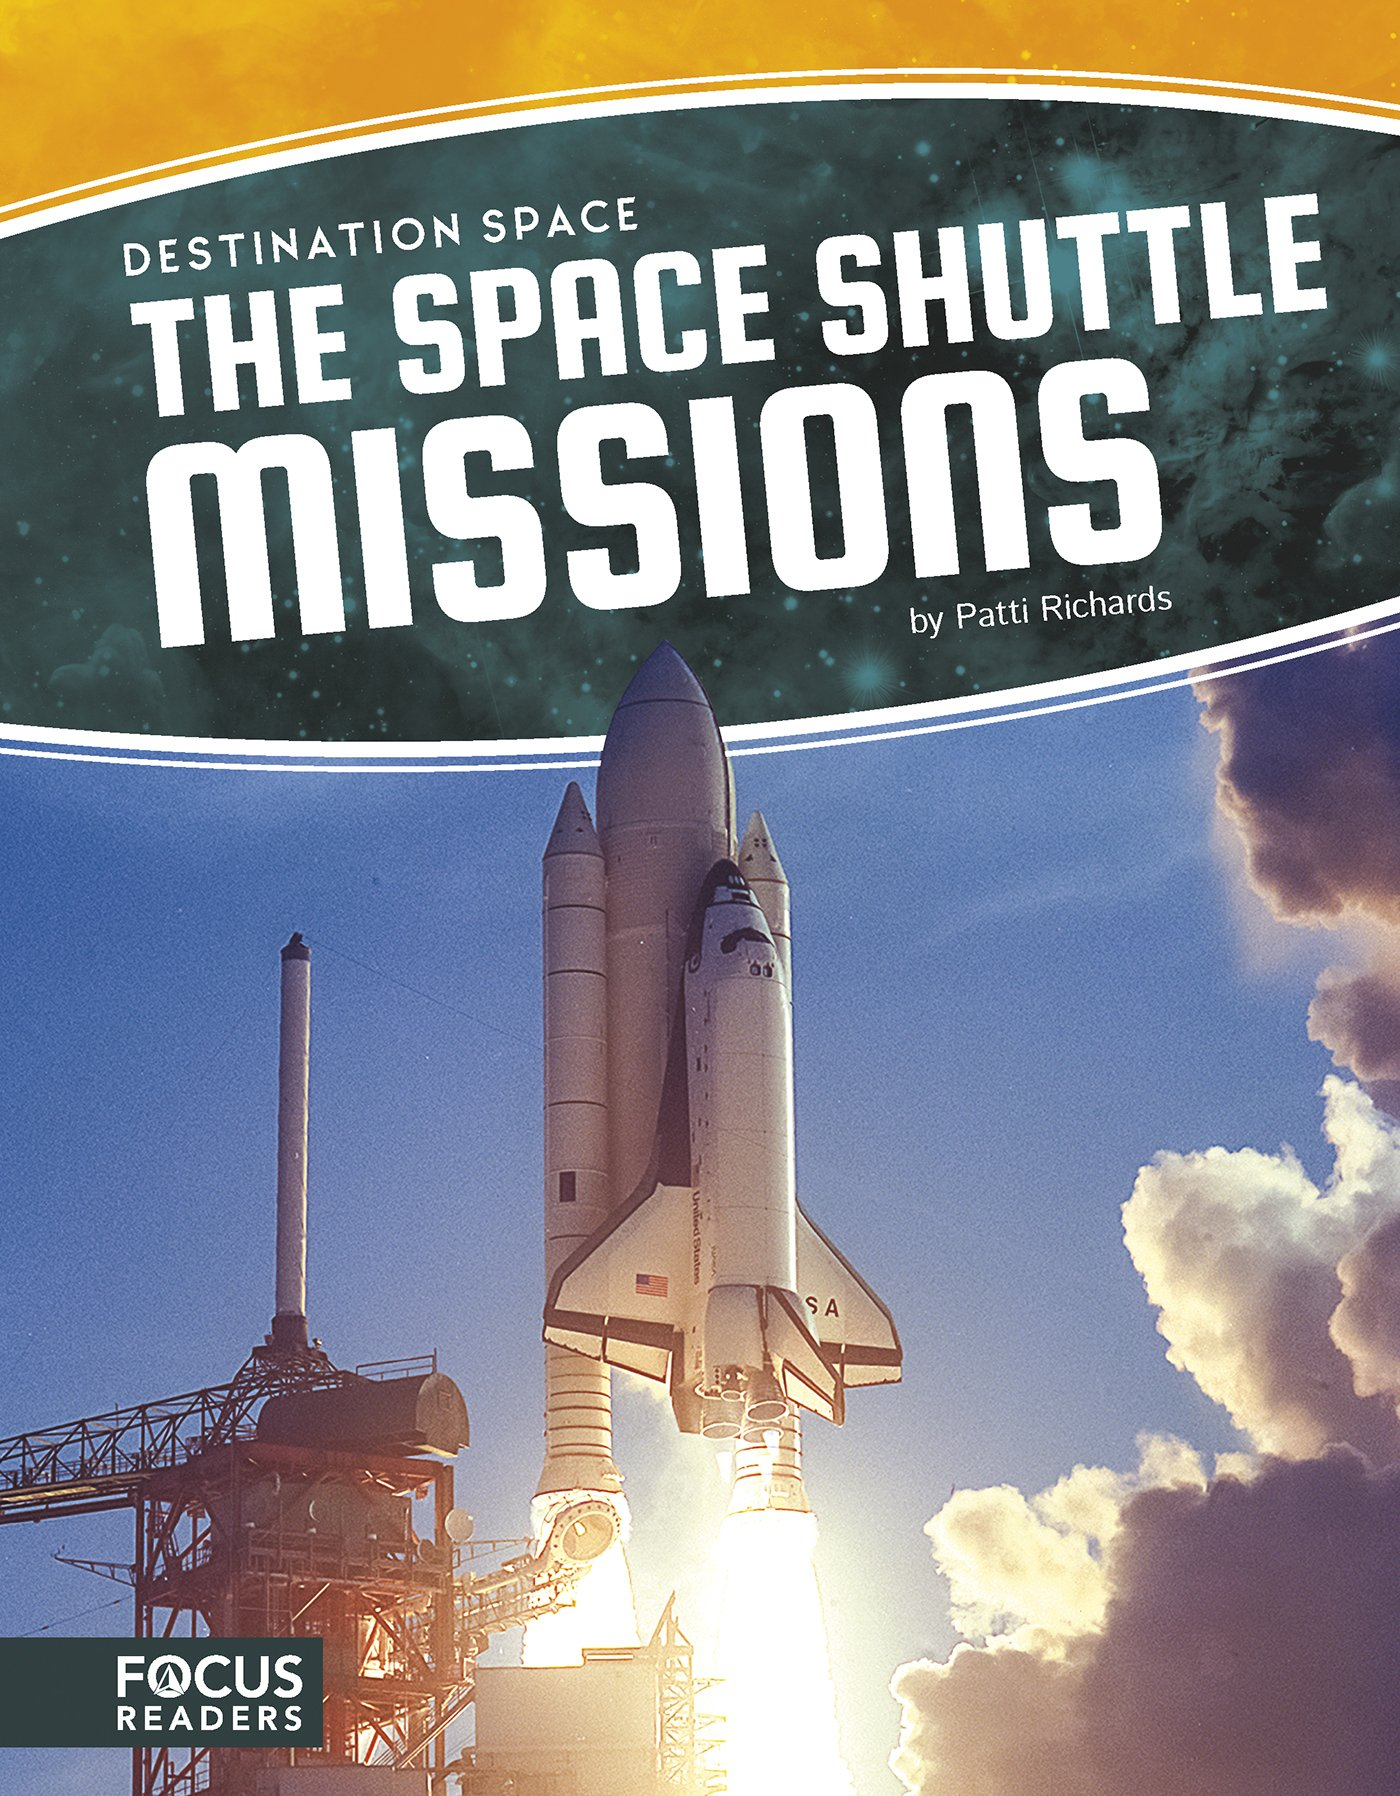 Download The Space Shuttle Missions (Destination Space) ebook